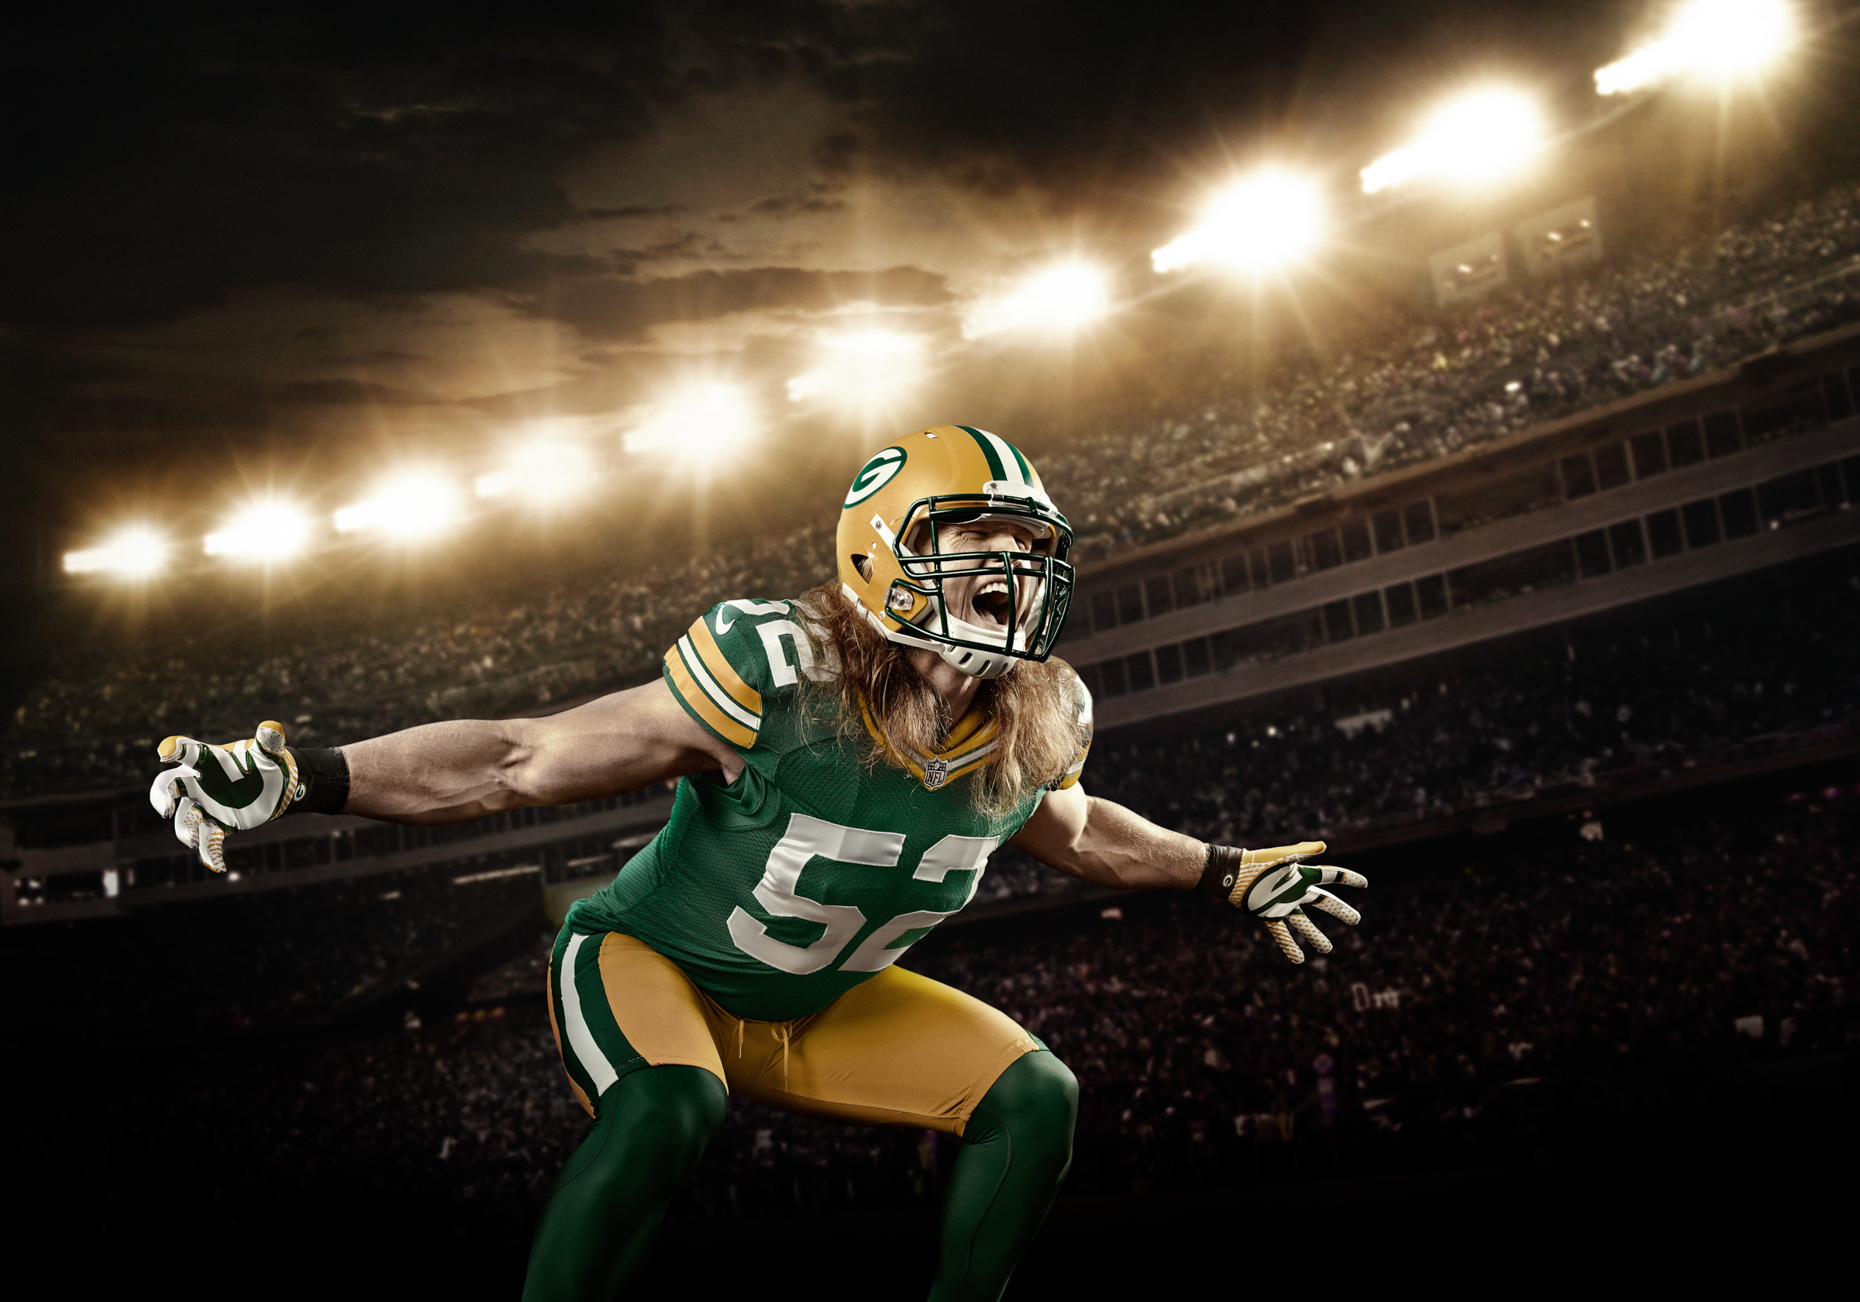 Clay Matthews is an American football outside linebacker for the Green Bay Packers of the National Football League